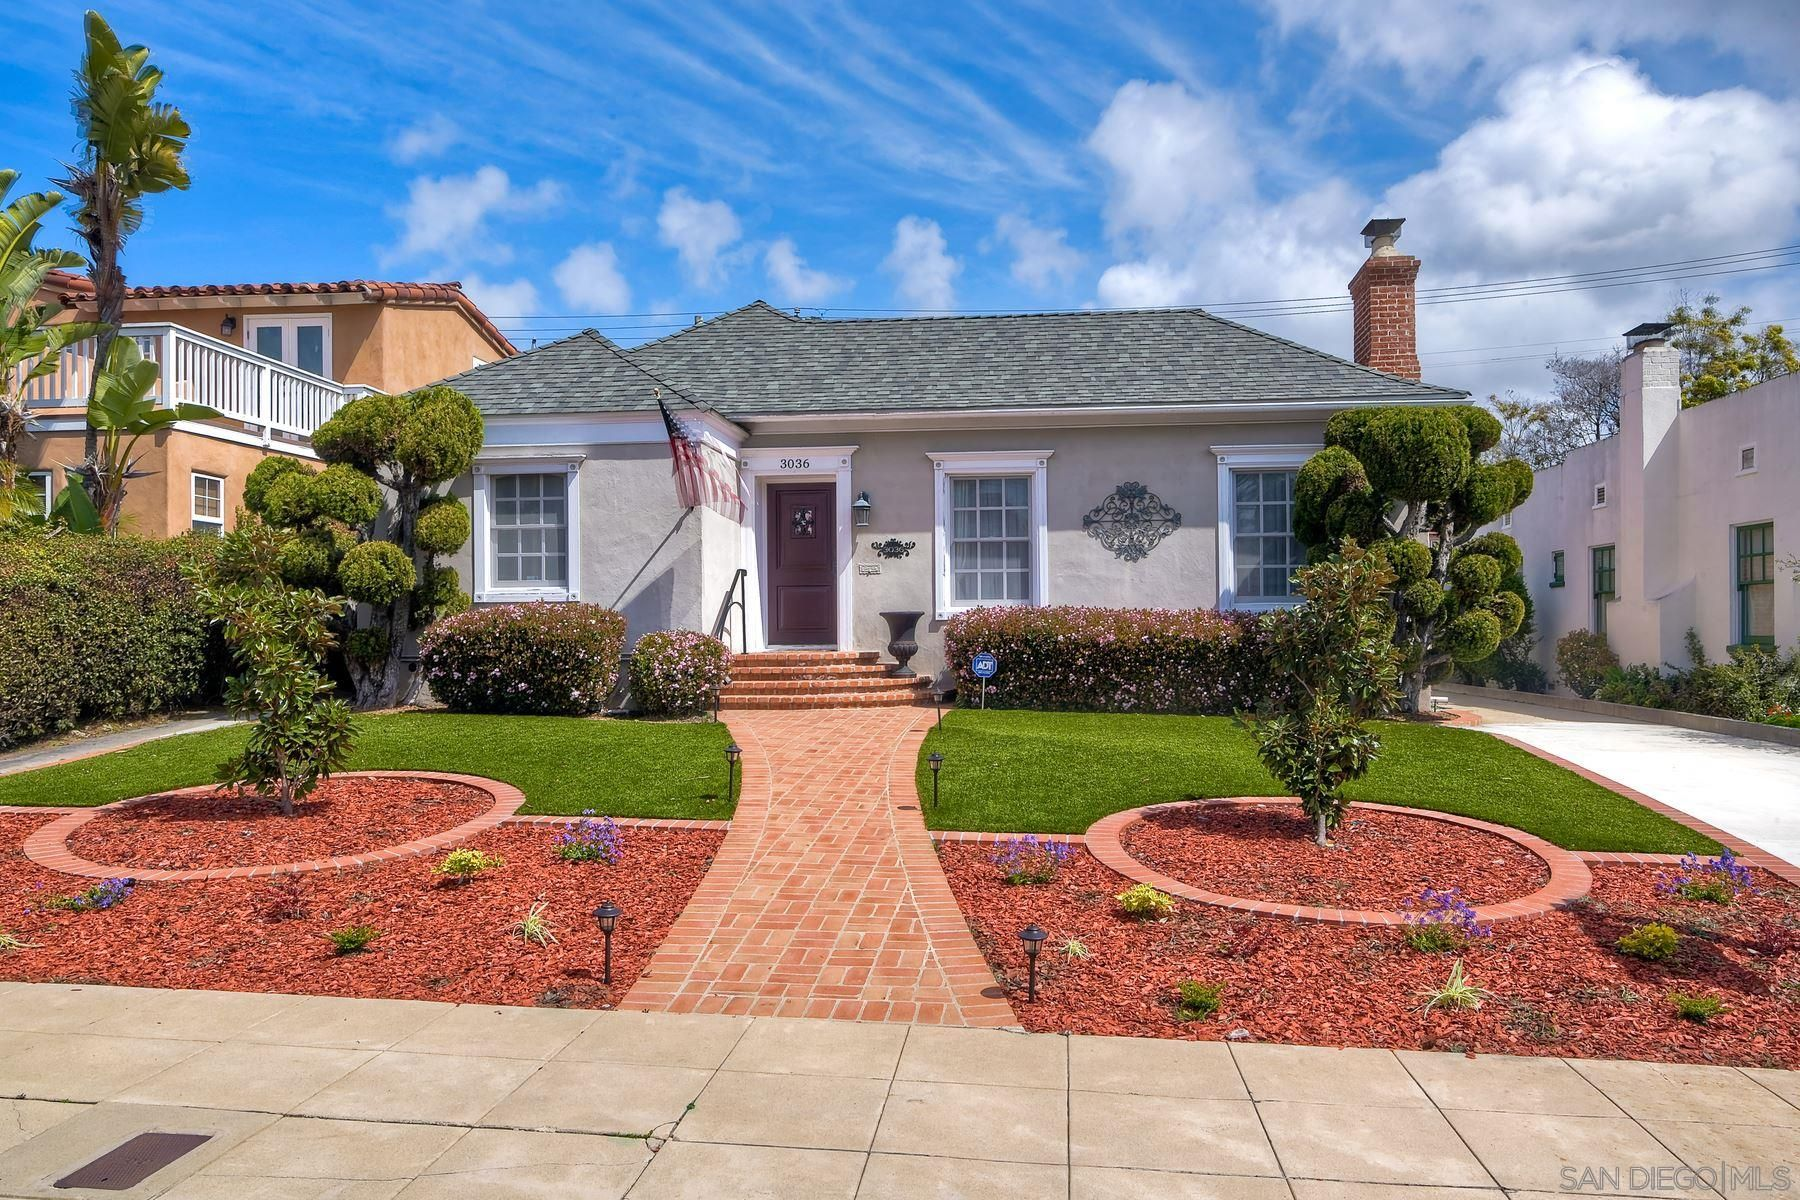 Main Photo: House for sale : 3 bedrooms : 3036 Kingsley St in San Diego